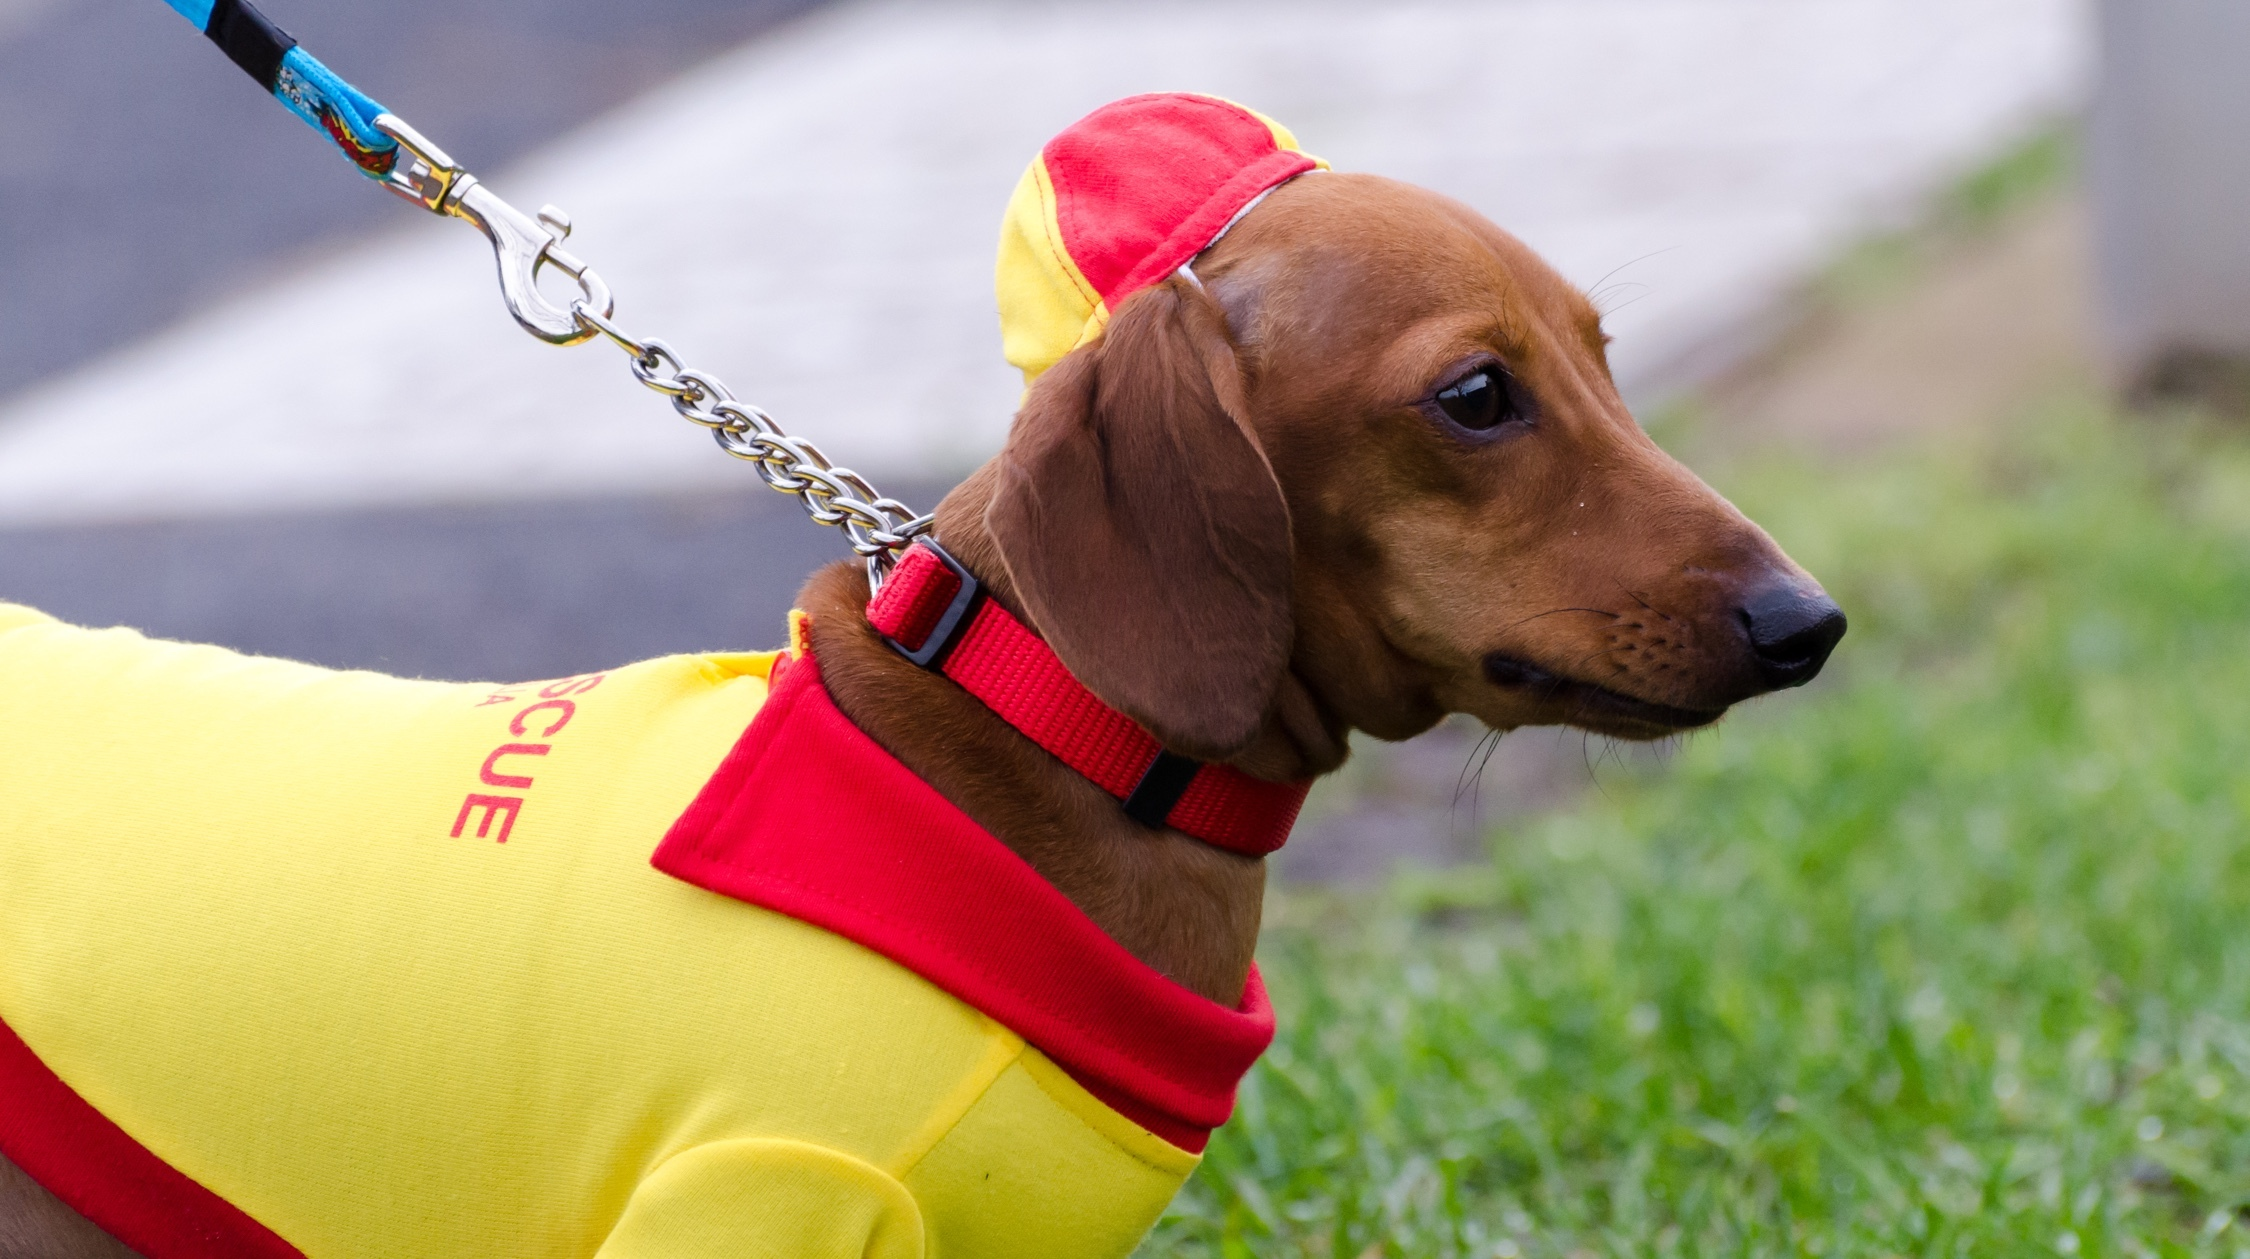 Generous Creative Pet Dog Hot Dog Costume Clothes Hamburger Cat Clothes Outfit For Small Medium Large Dog Novelty Winter Warm Clothes 2019 Official Home & Garden Pet Products